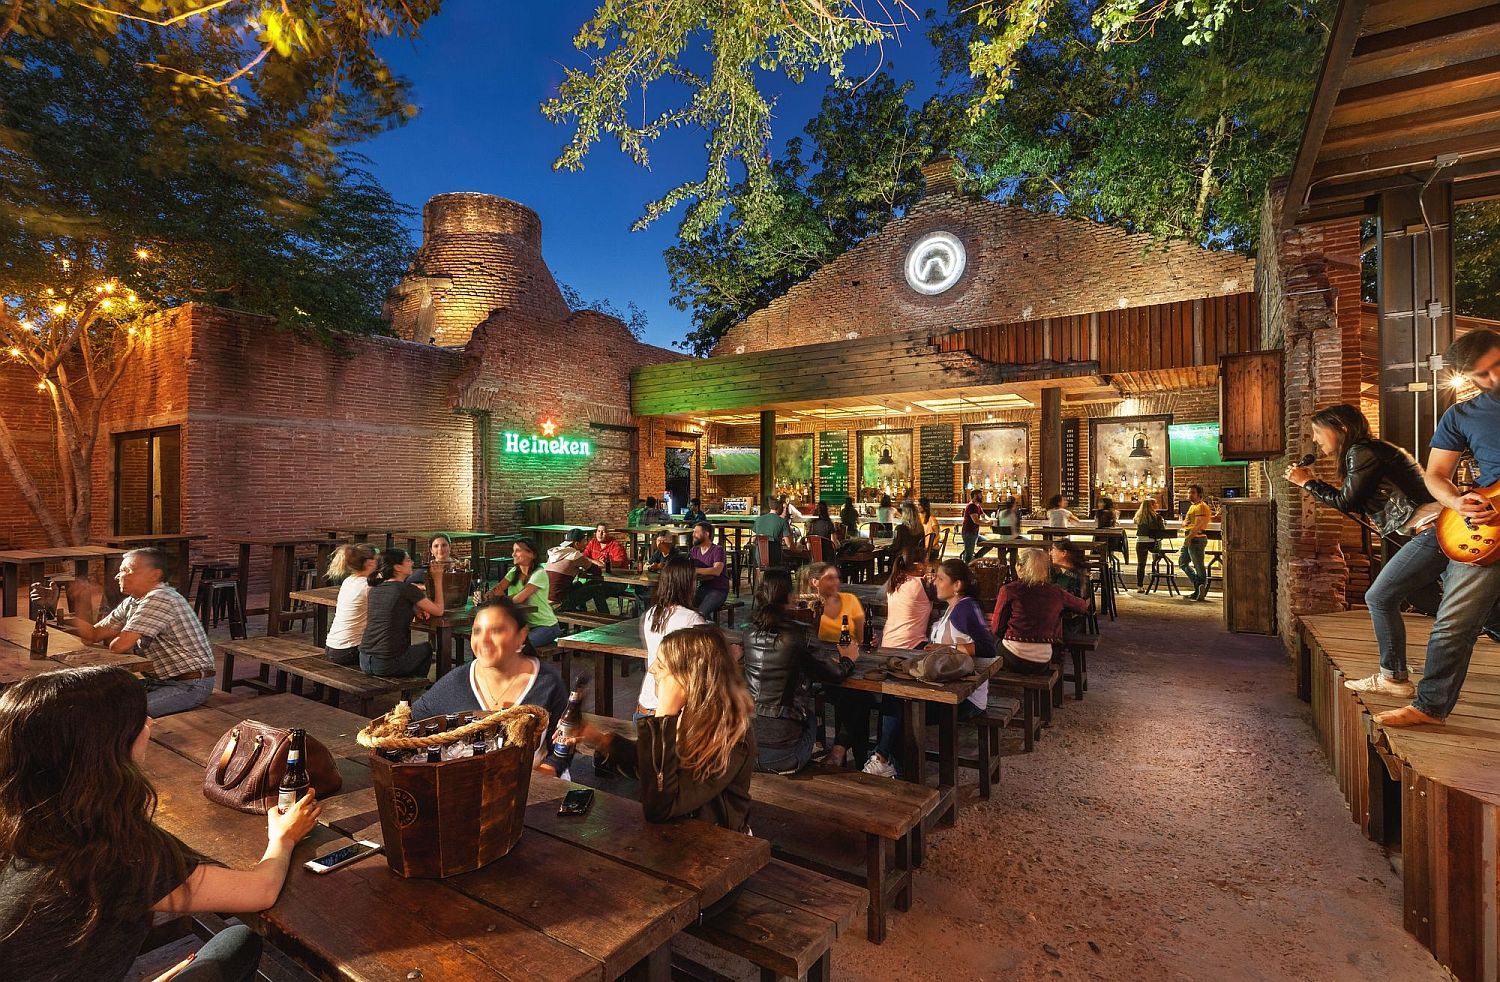 Ruins of an old textile factory turned into a stunning bar and hangout